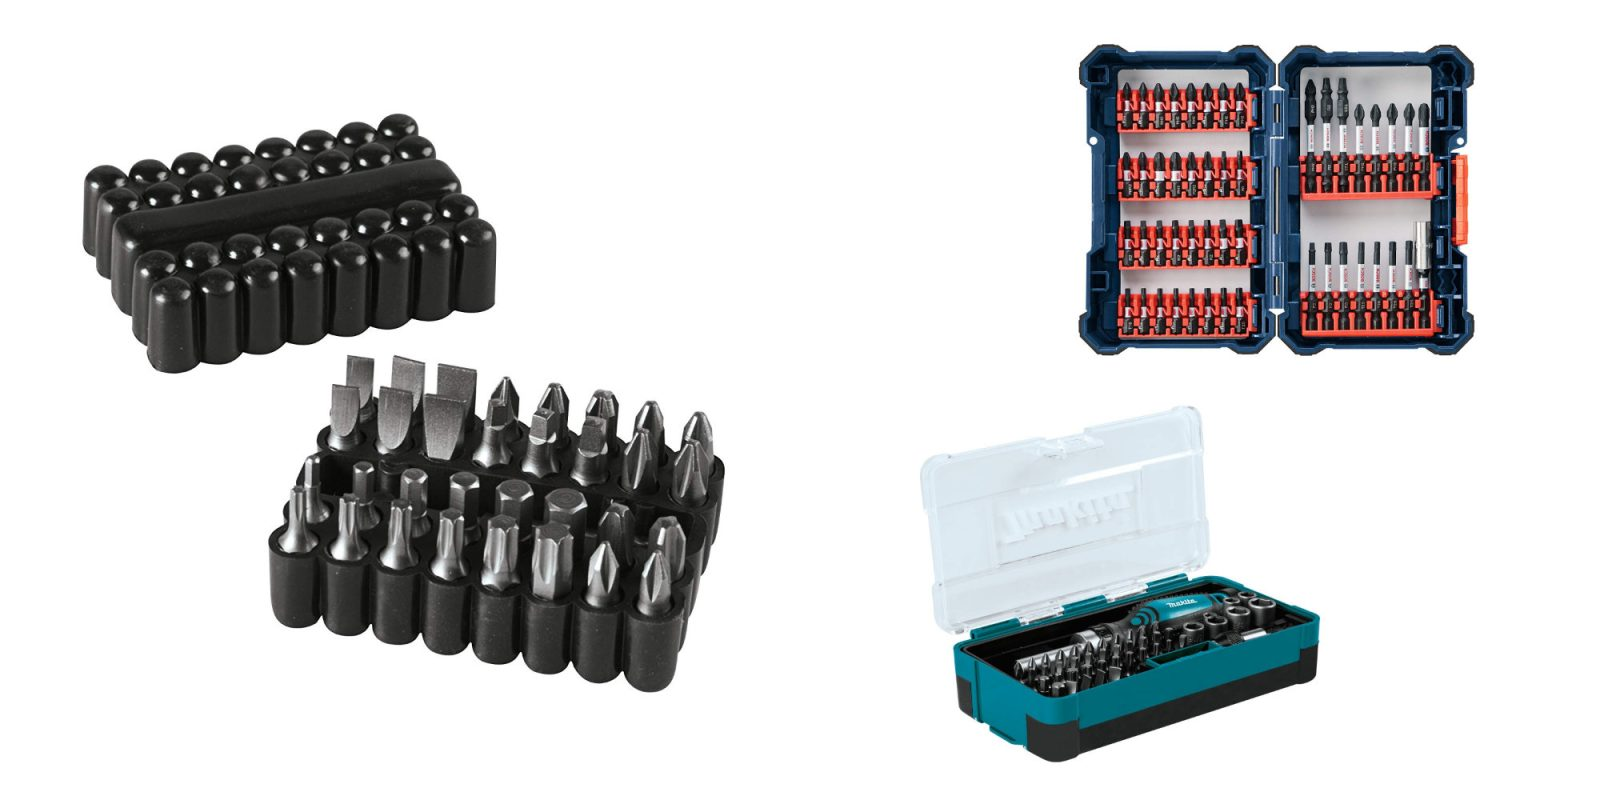 Amazon has several bit sets on sale, prices start from just $4 Prime shipped